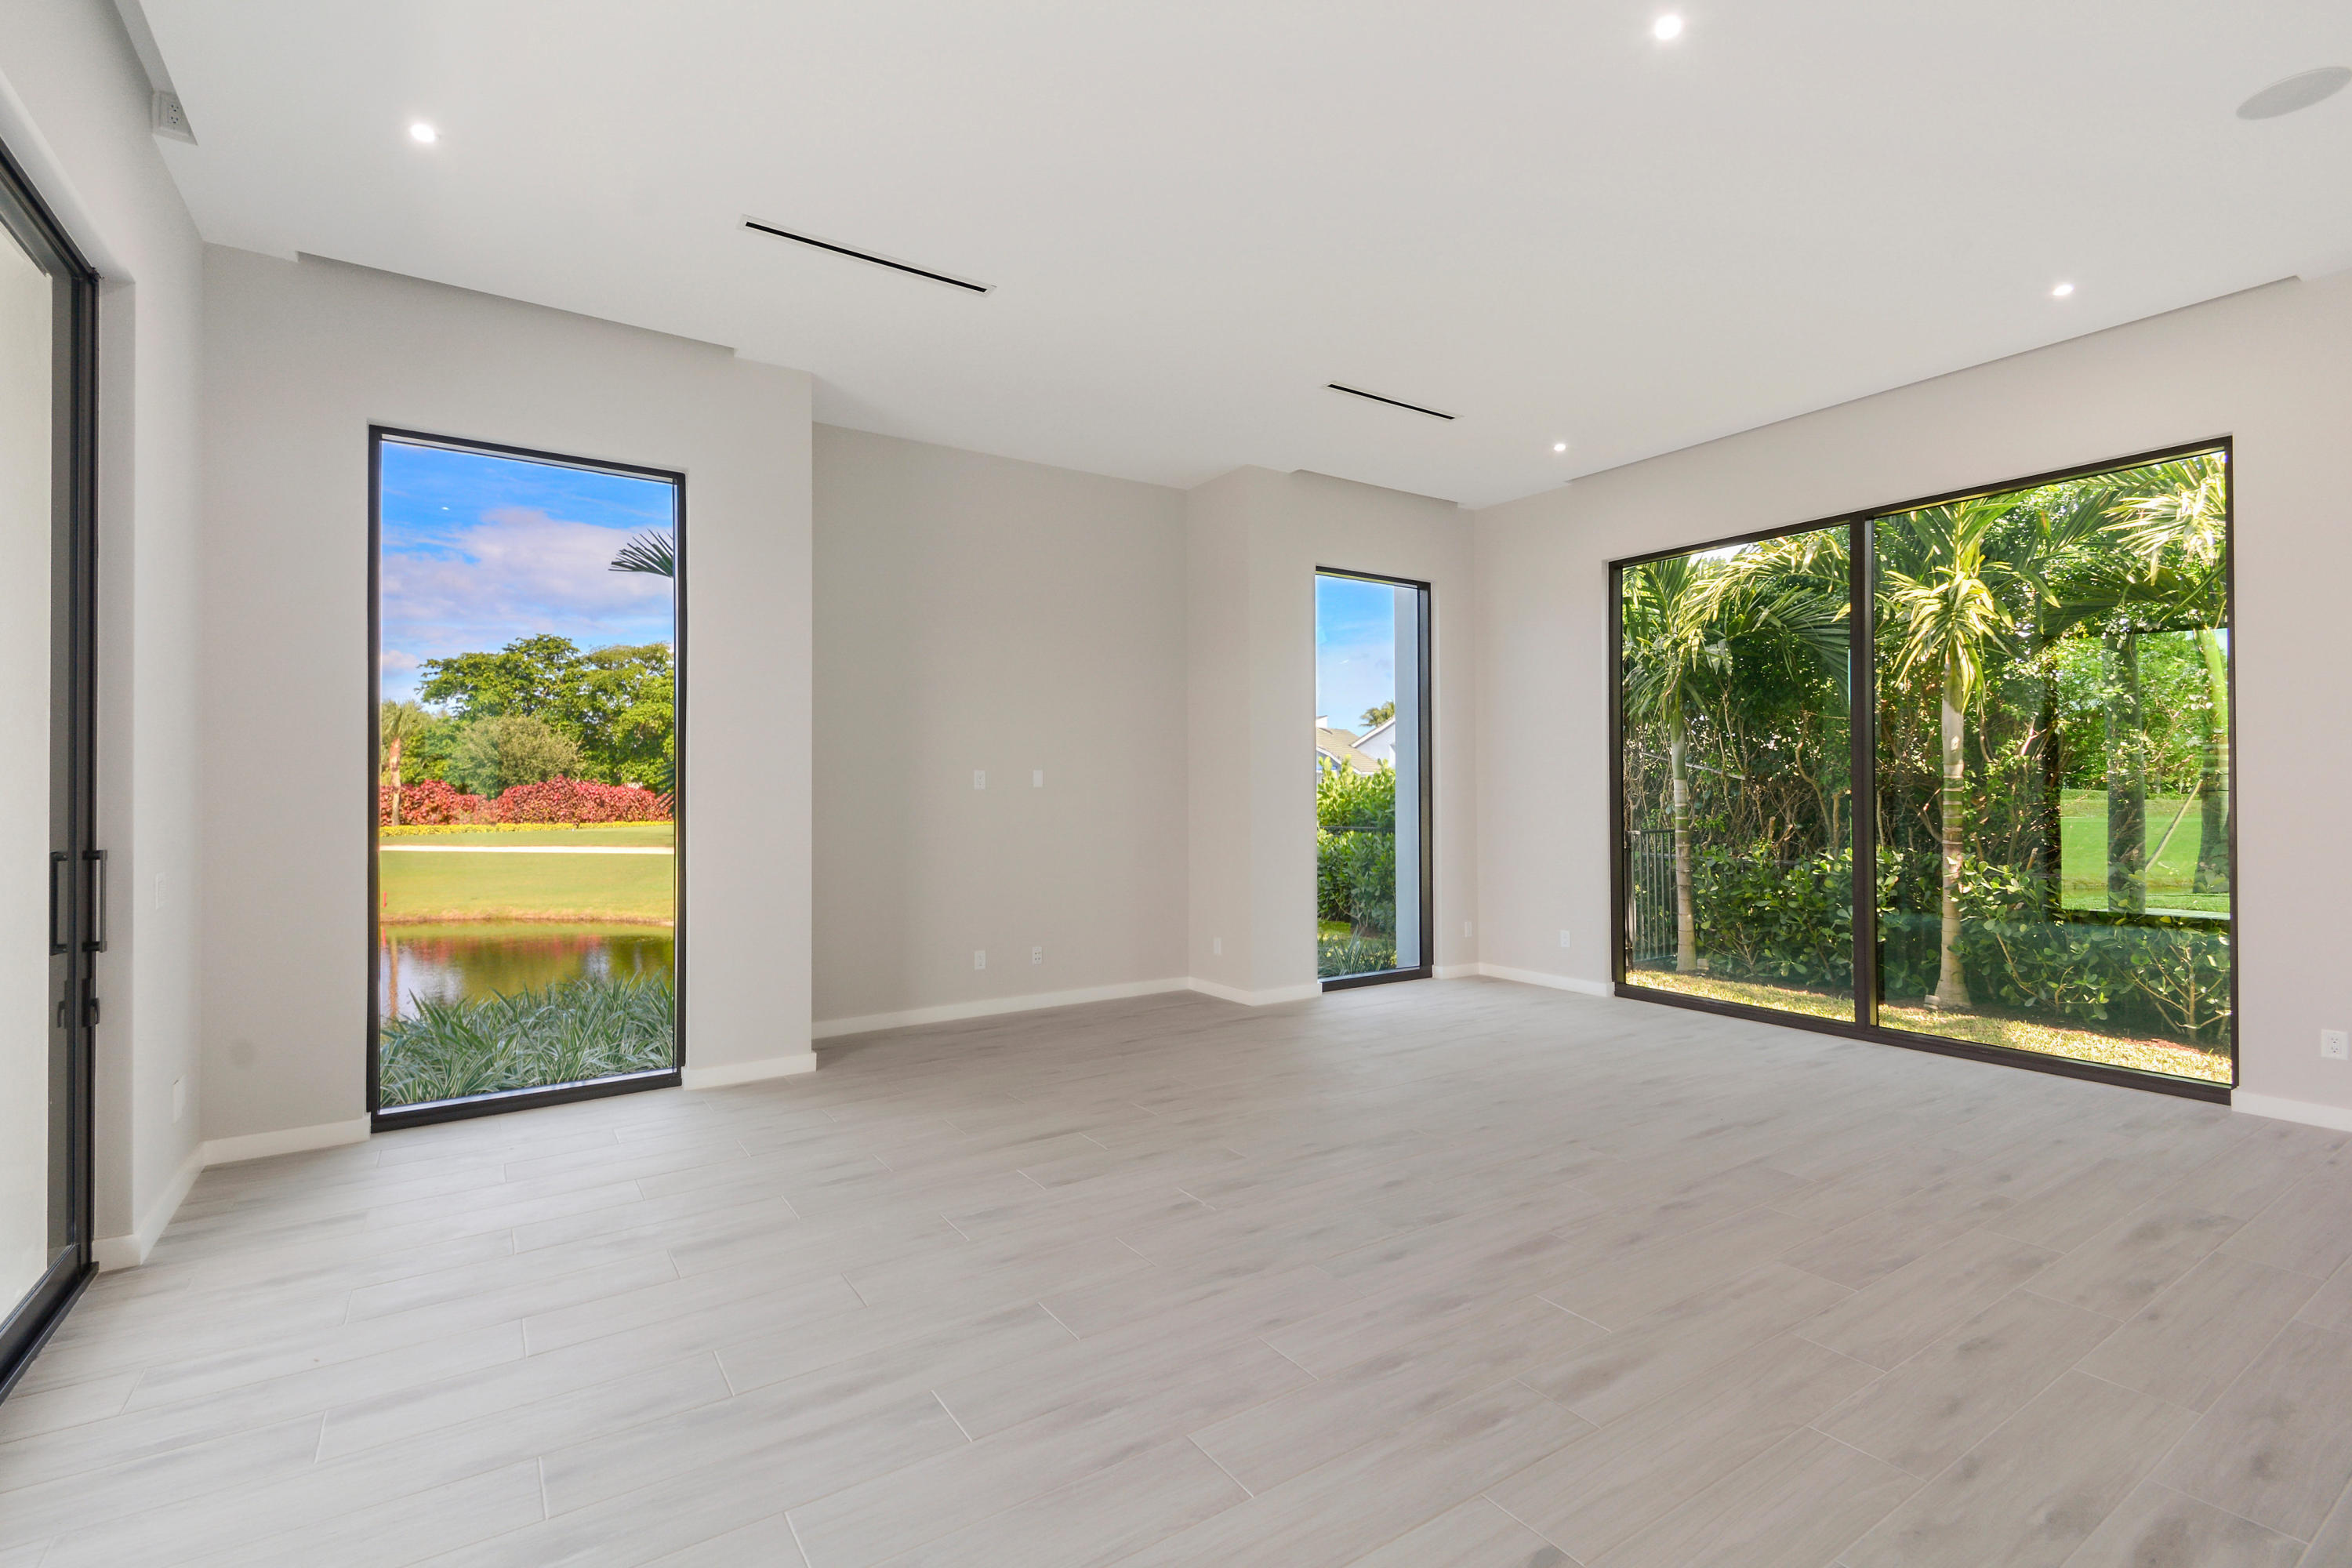 7677 Stonehaven Lane, Boca Raton, Florida 33496, 5 Bedrooms Bedrooms, ,7.1 BathroomsBathrooms,Single Family,For Sale,ST ANDREWS COUNTRY CLUB,Stonehaven,RX-10479170